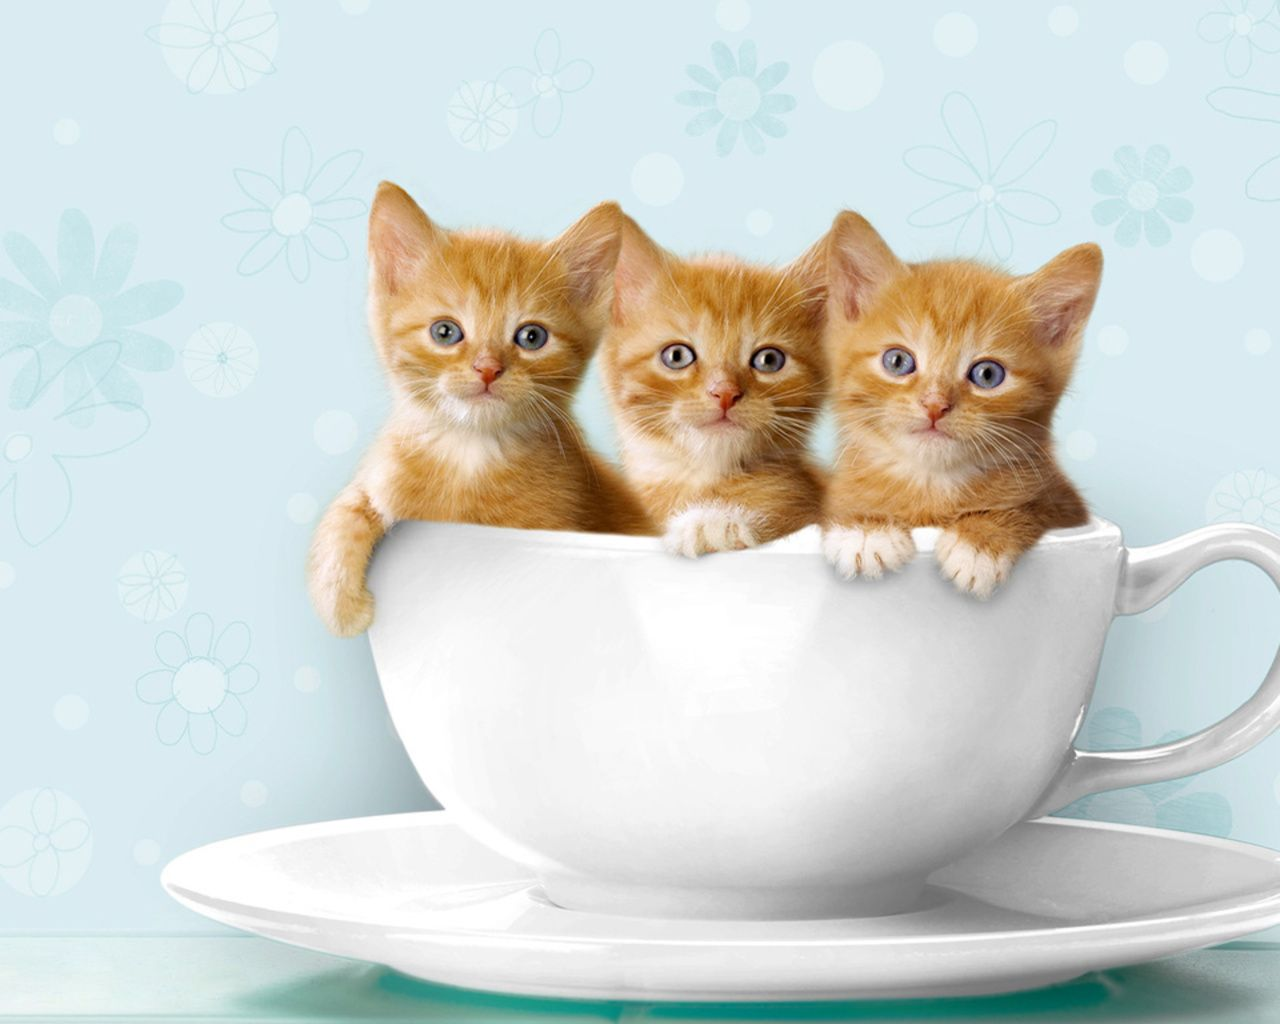 Teacup kittens. Not really, it's just a really cup for